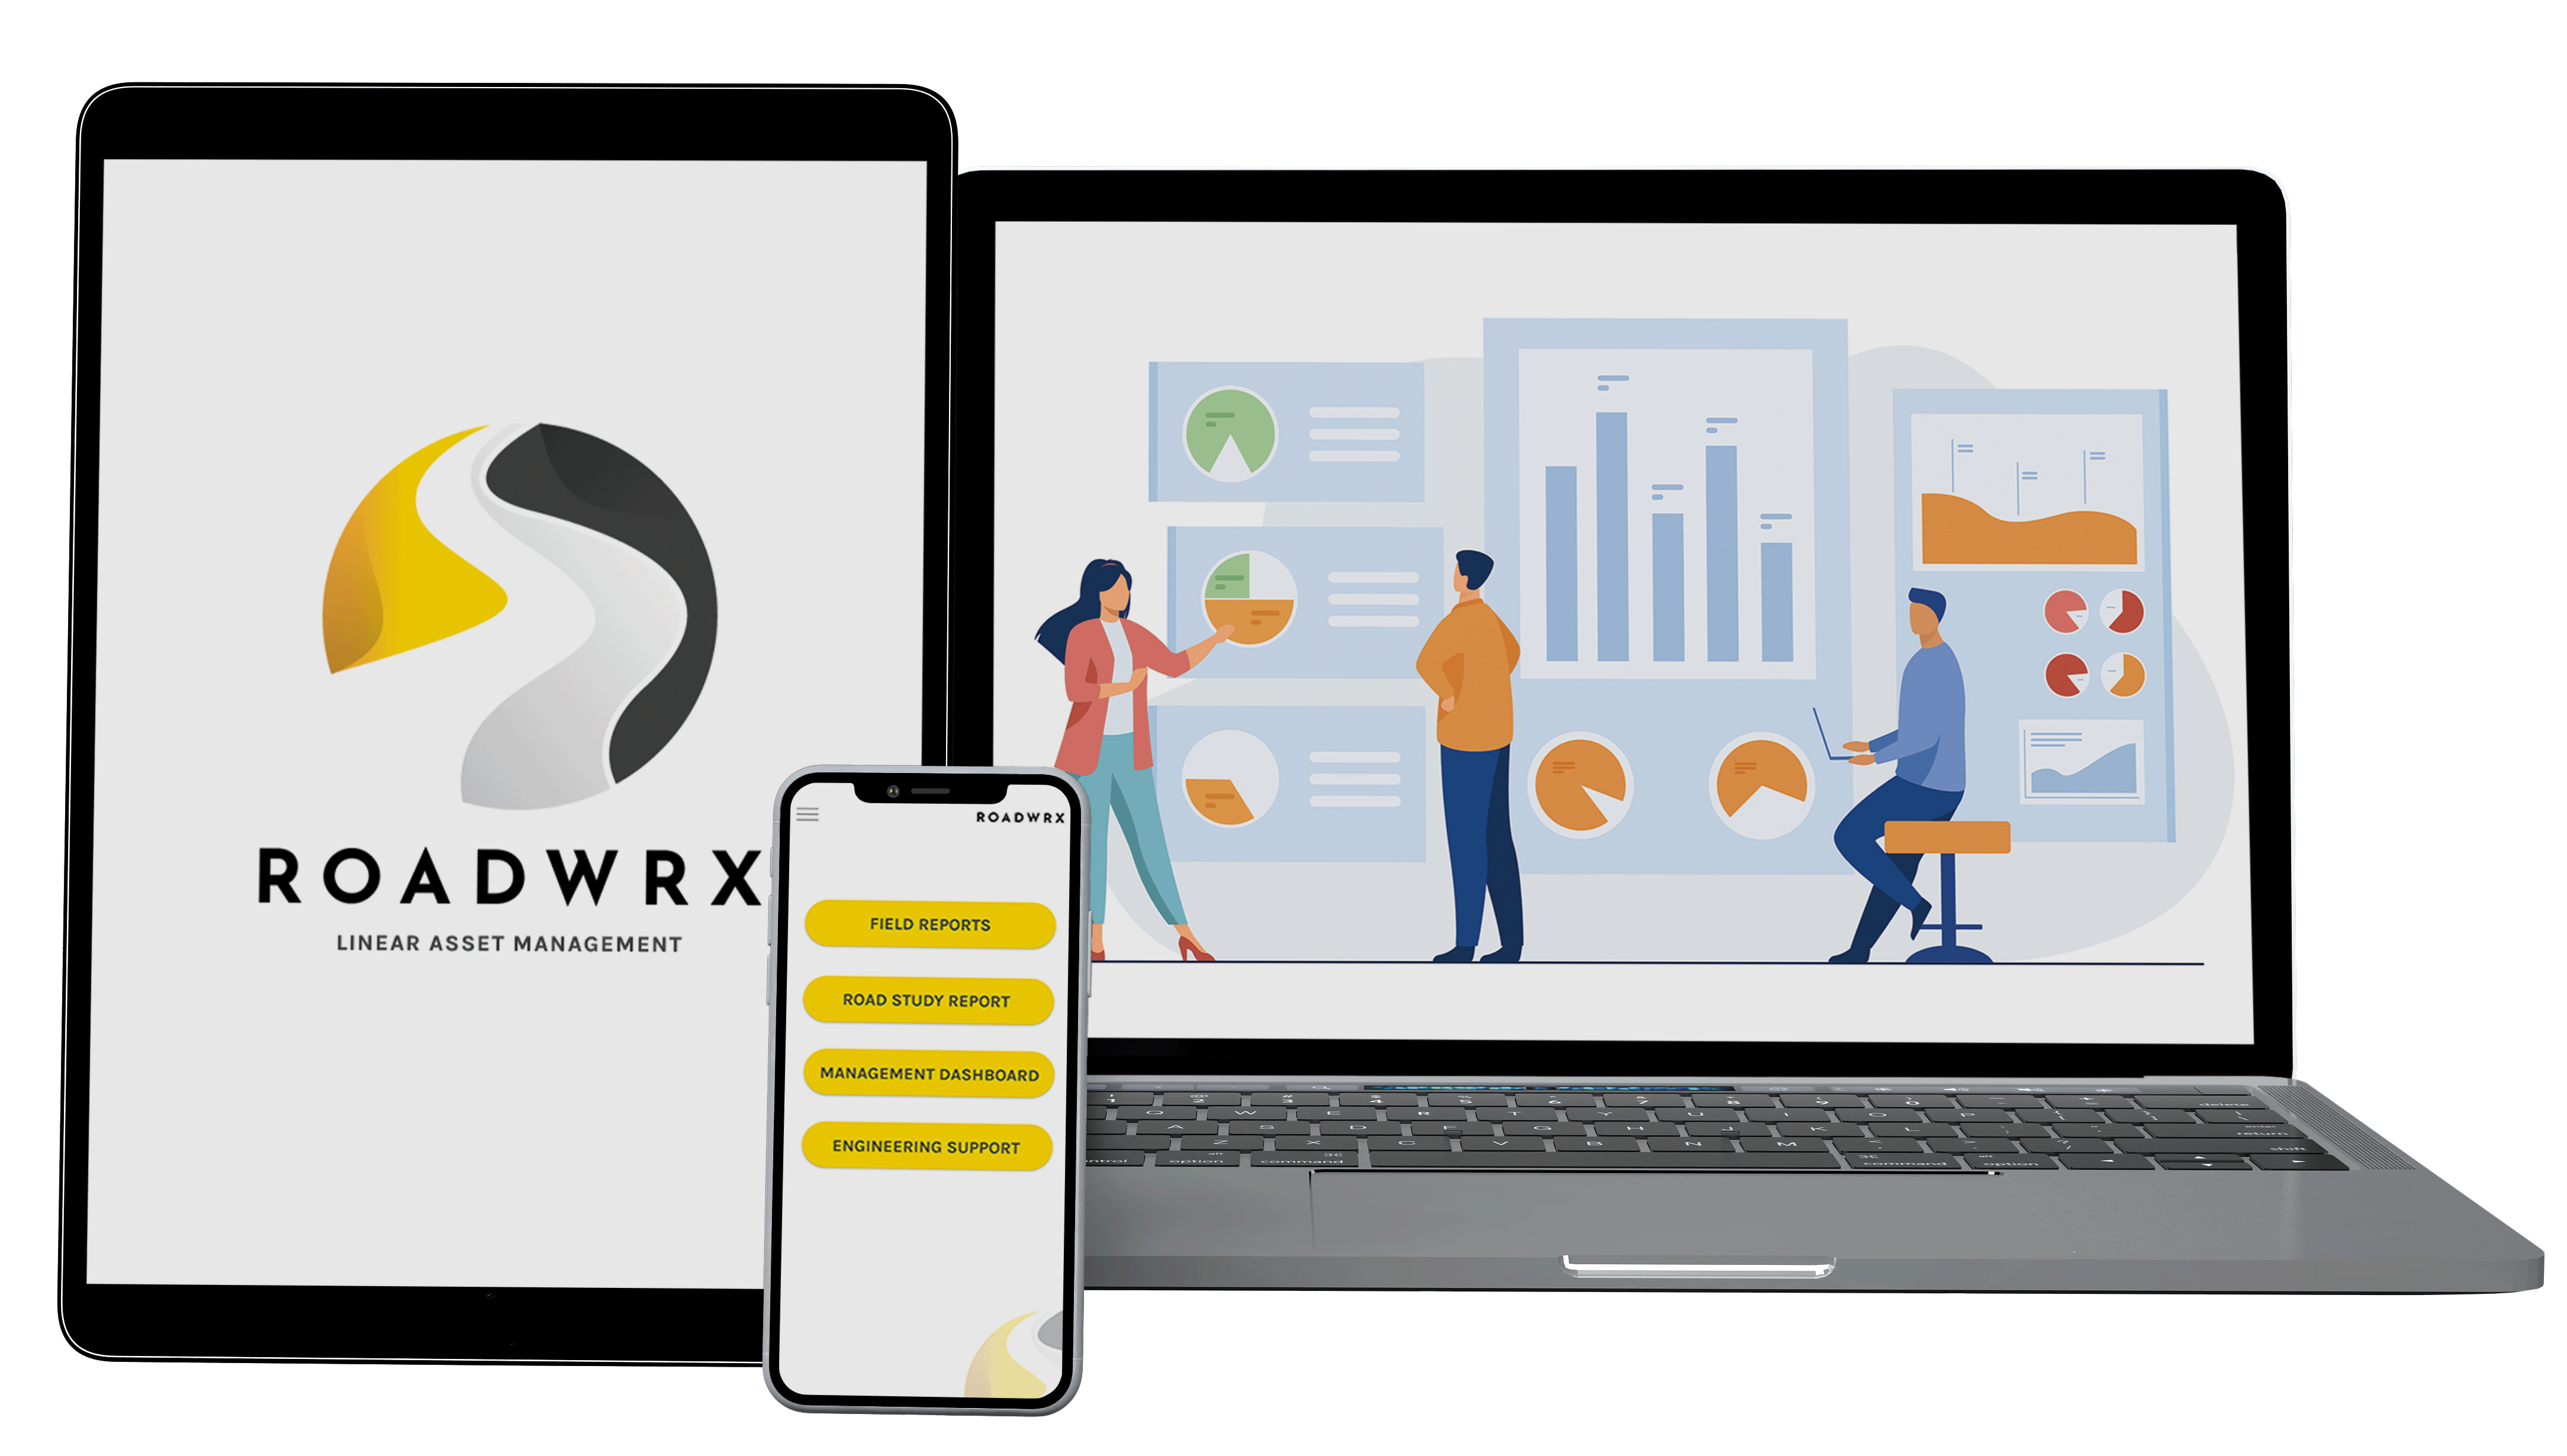 RoadWRX - Linear Asset Management Solutions for Mobile Devices